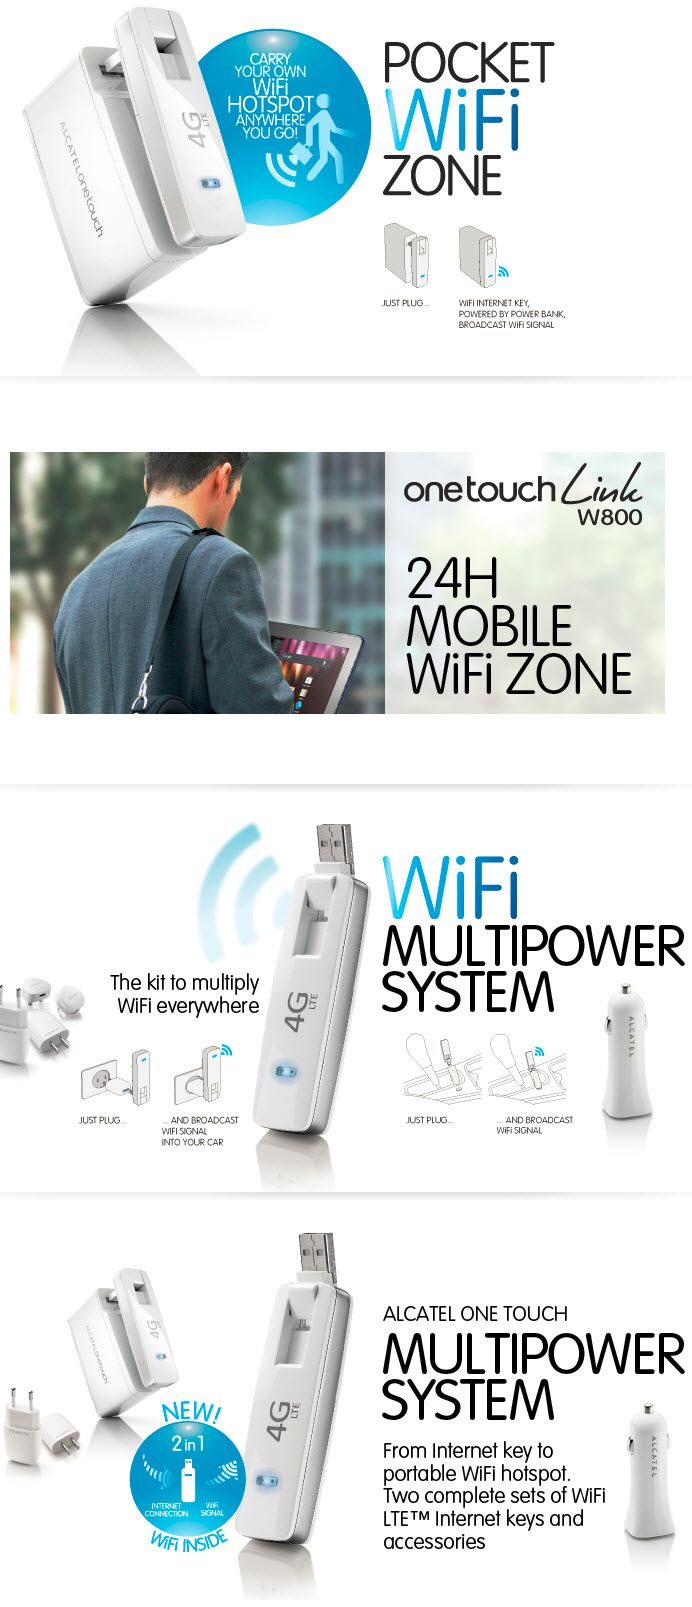 Alcatel One Touch W800 4G LTE WiFi router